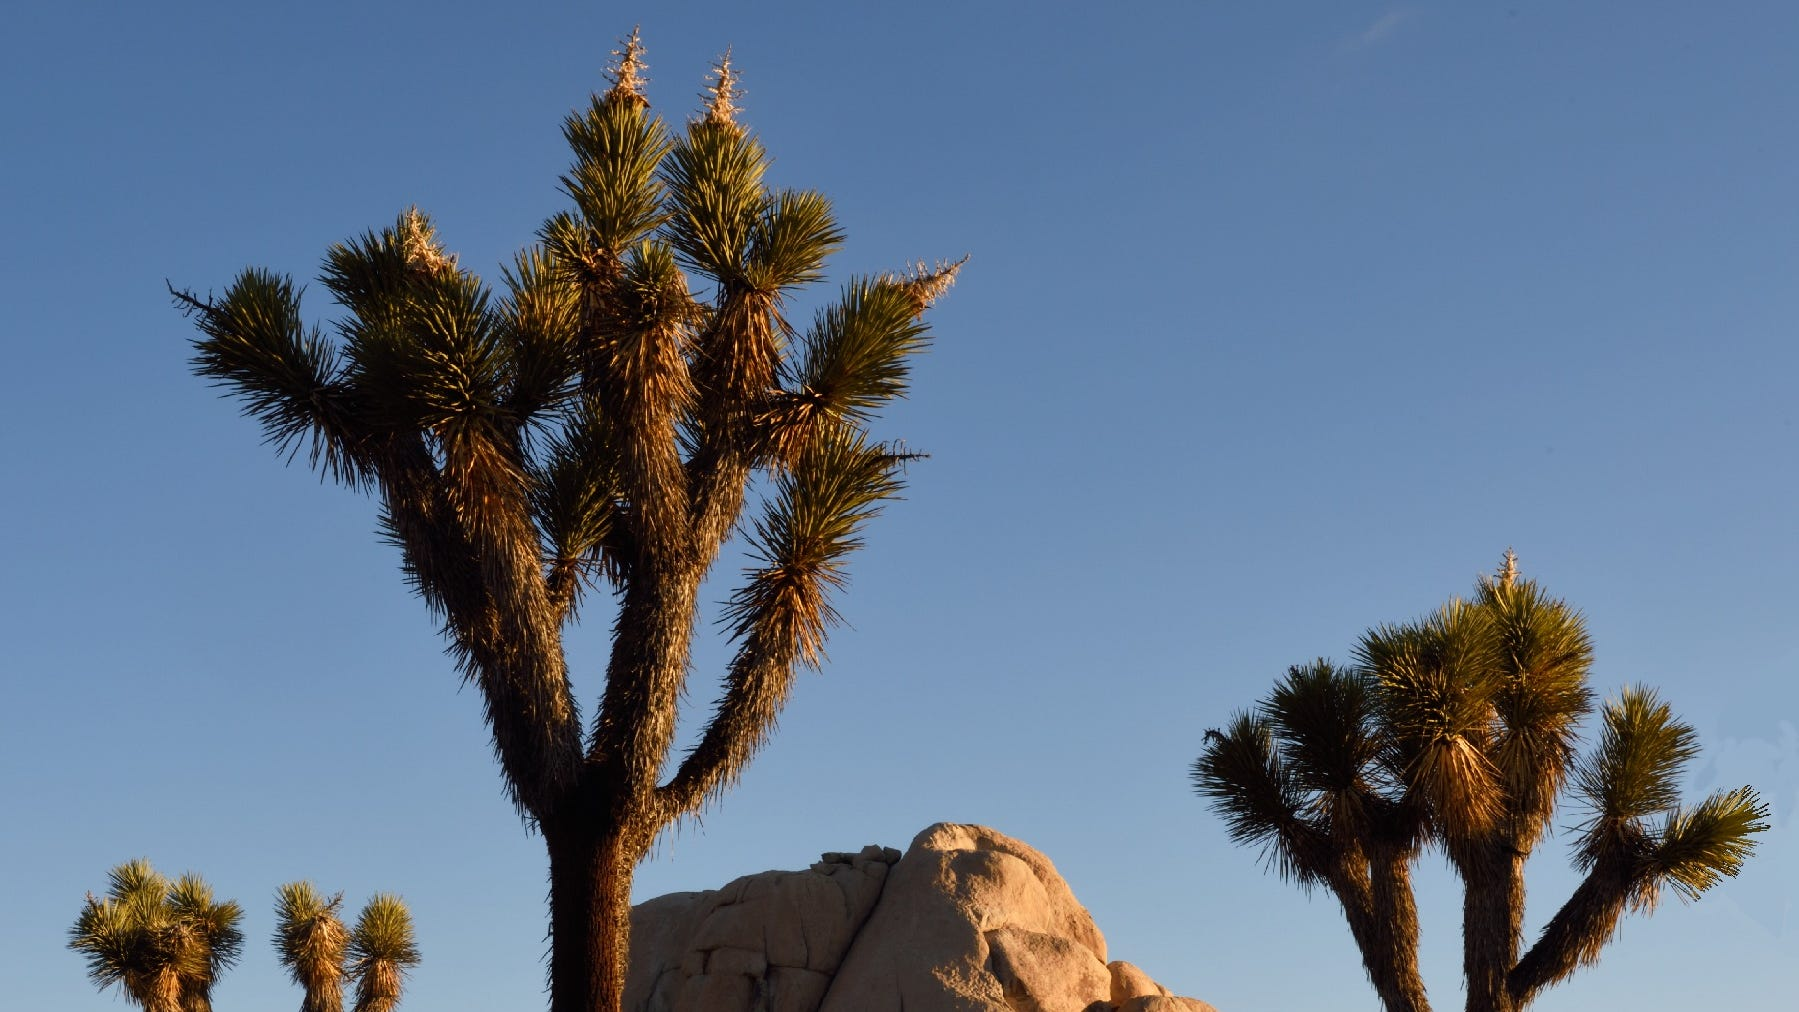 The latest place impacted by poor air quality? Joshua Tree National Park